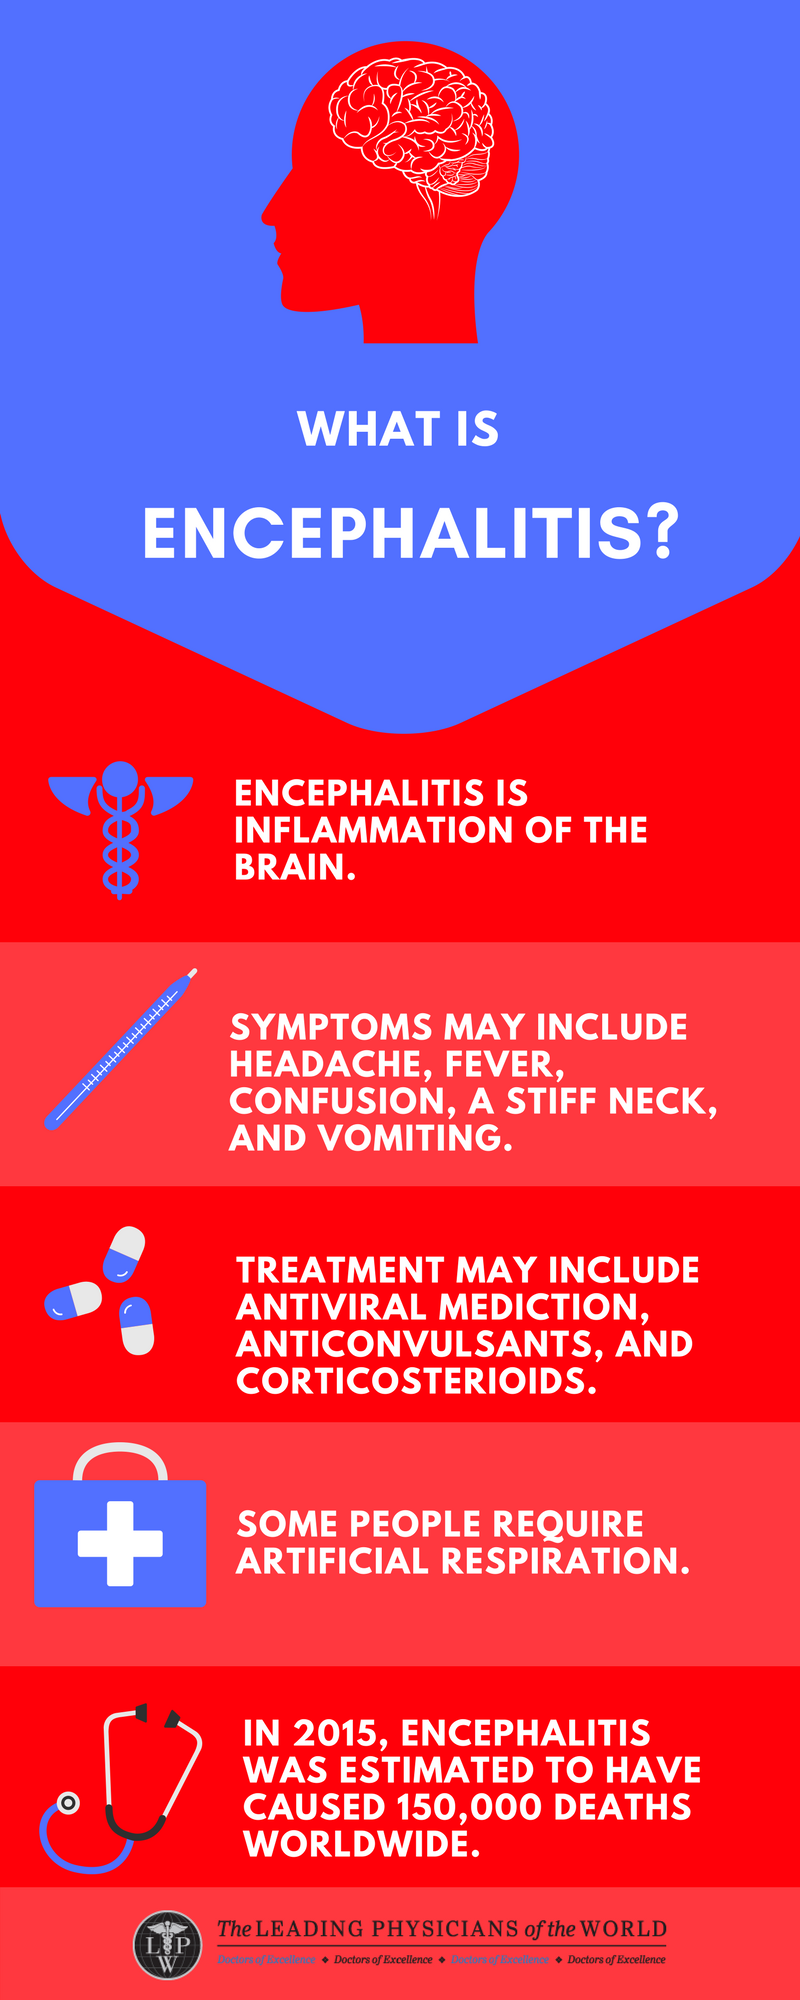 a description of encephalitis in diseases of the nervous system Looking for online definition of postinfection encephalitis in the medical dictionary that is important in diagnosing diseases of the central nervous system.